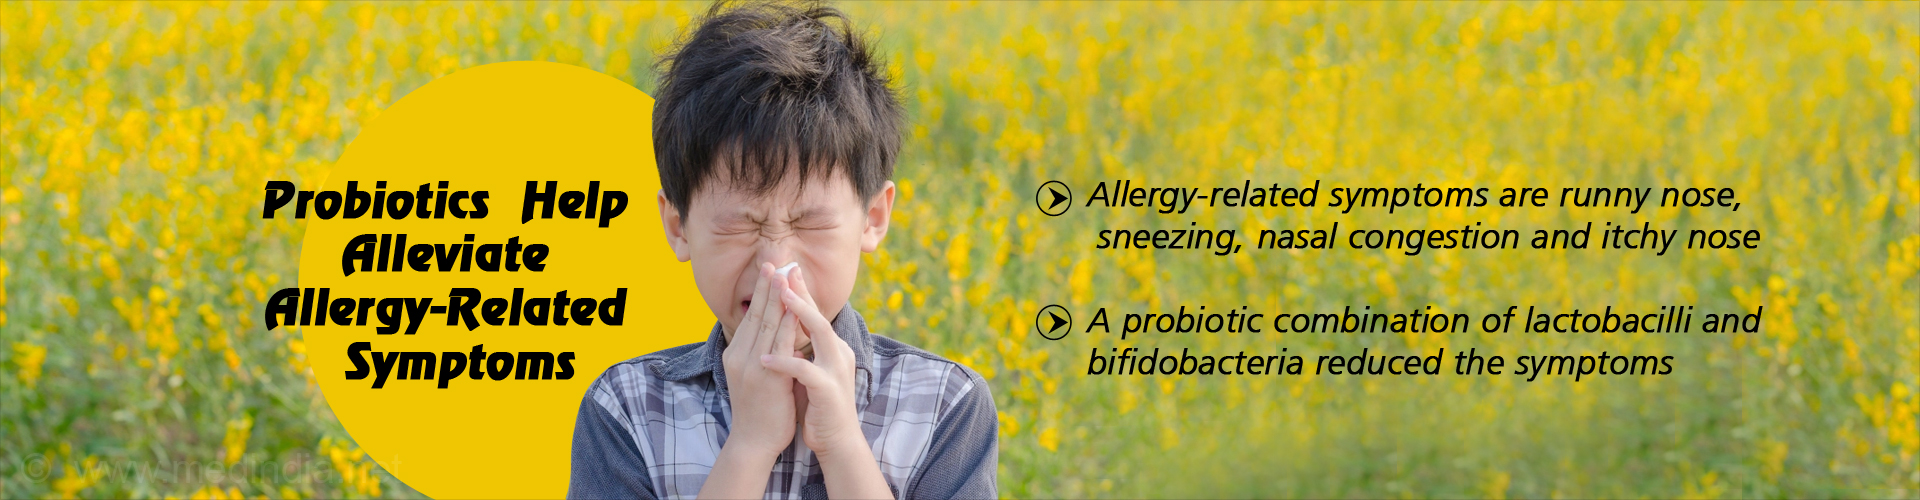 probiotics help alleviate allergy-related symptoms